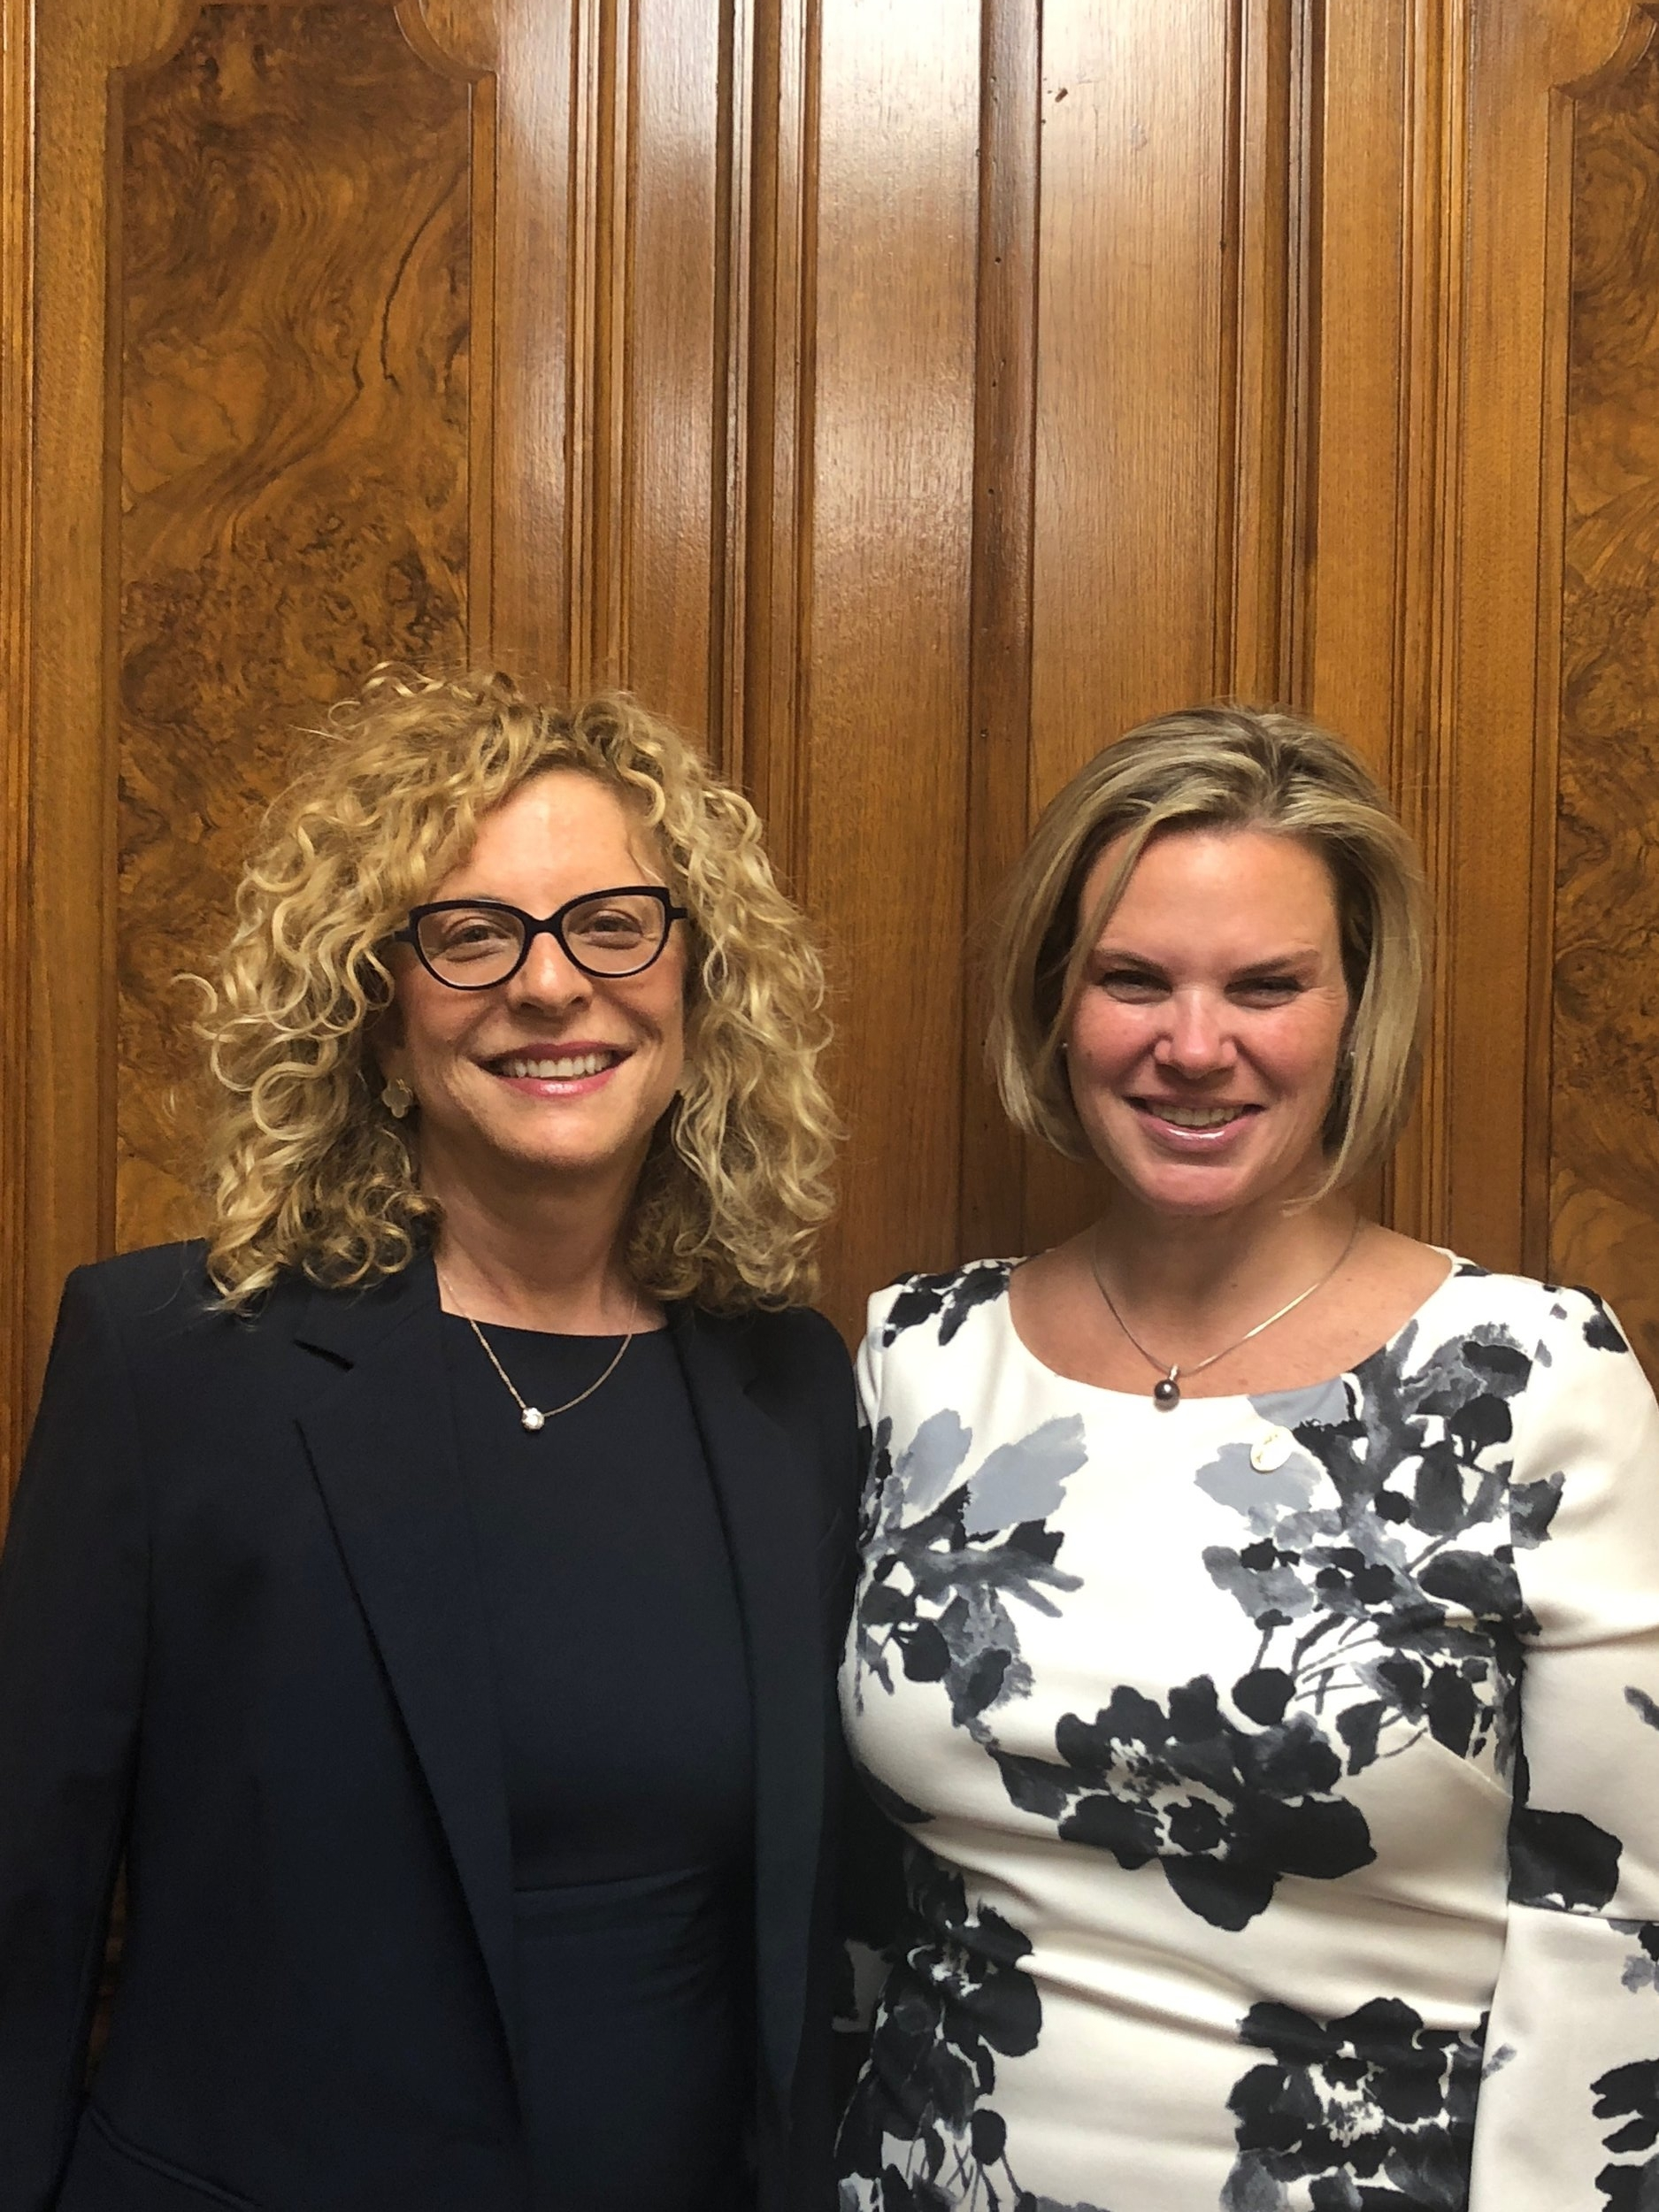 Sandra Schpoont  (left) and  Carrie Anne Cavallo  (right).